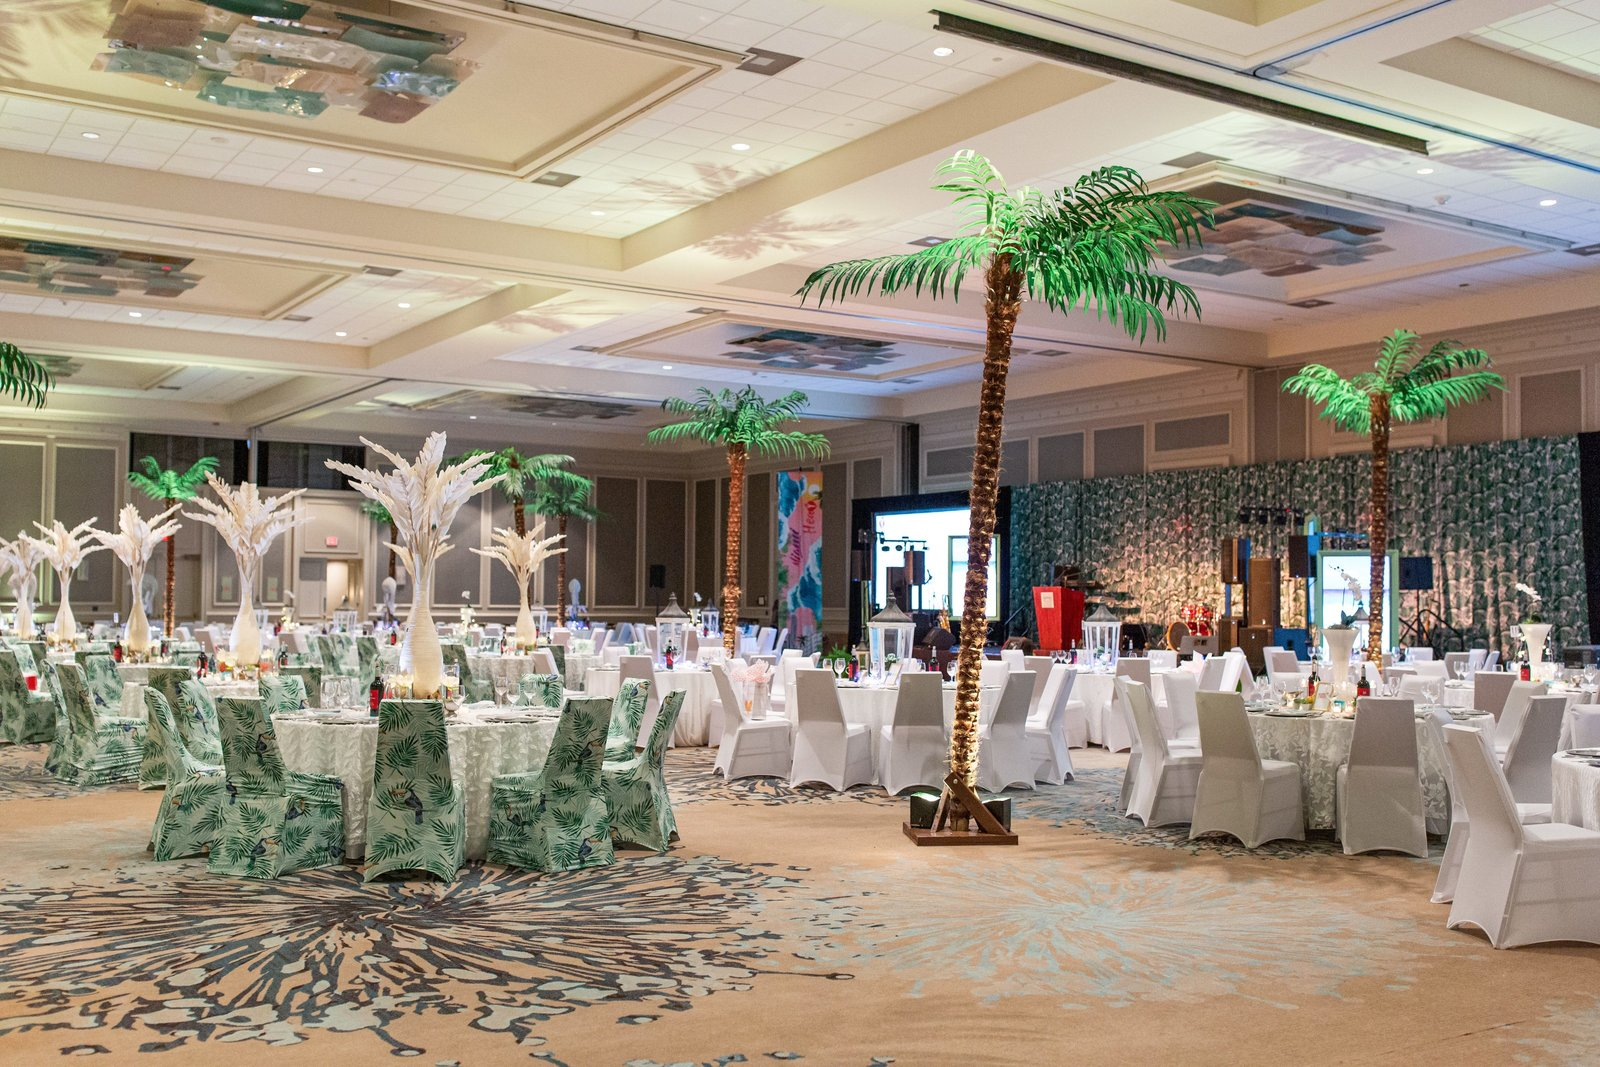 inside of a ballroom decorated for a gala